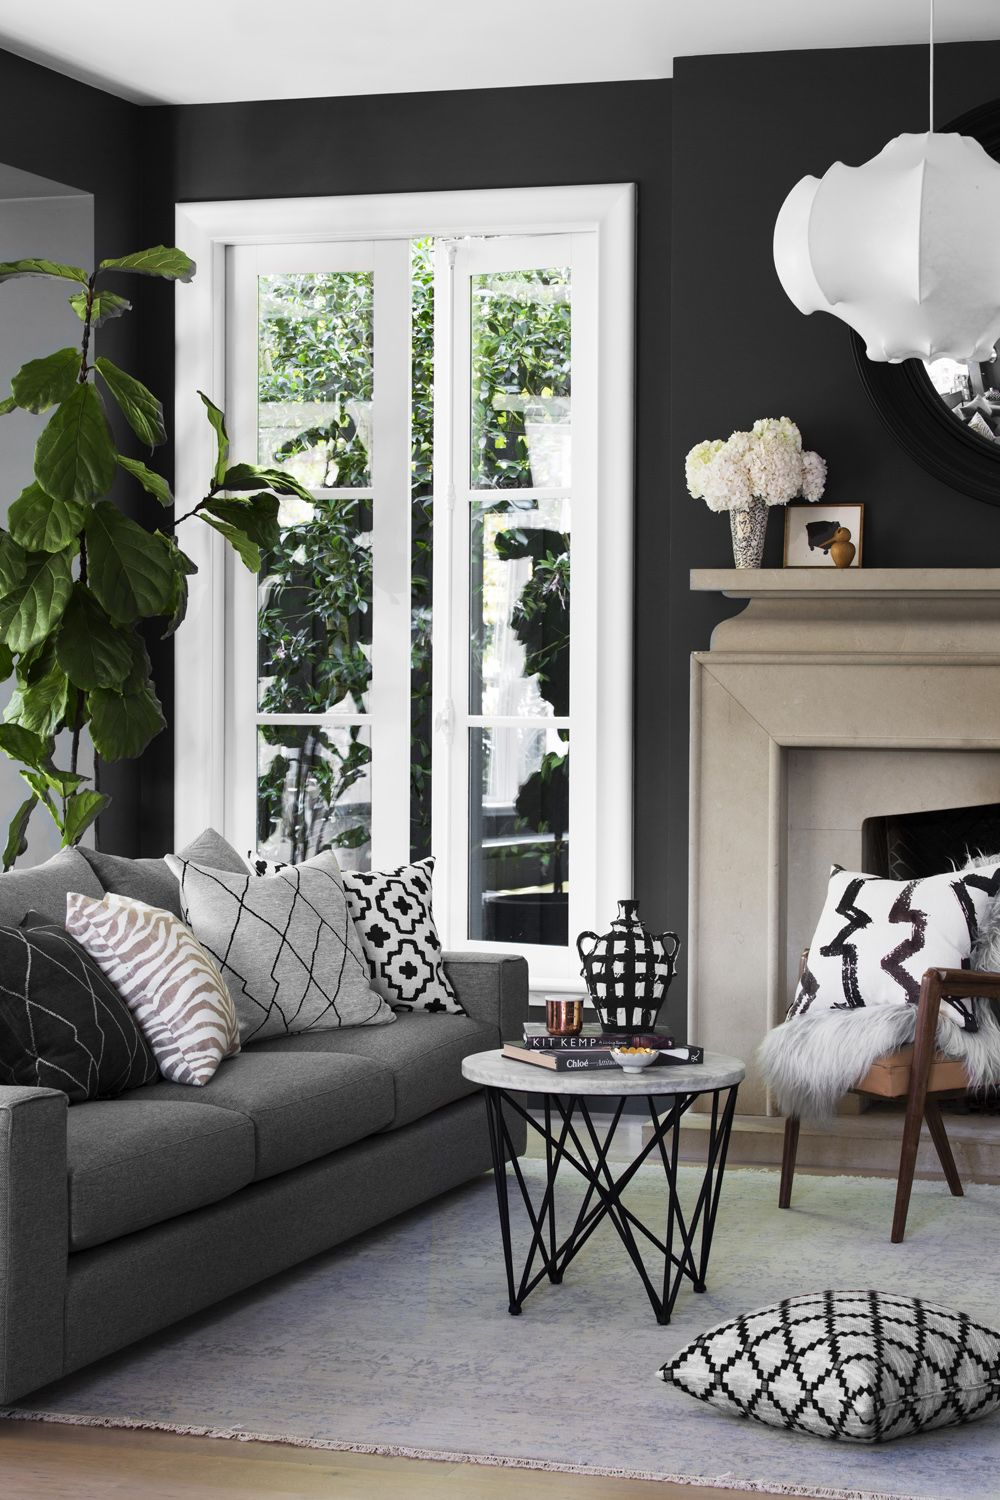 Living Room Design With Grey Walls Display 20 Exotic Dark Ideas For The Home Yet These Layouts Are Fashionable Stylish As Well Relaxing Rooms Can Be Carried Out In